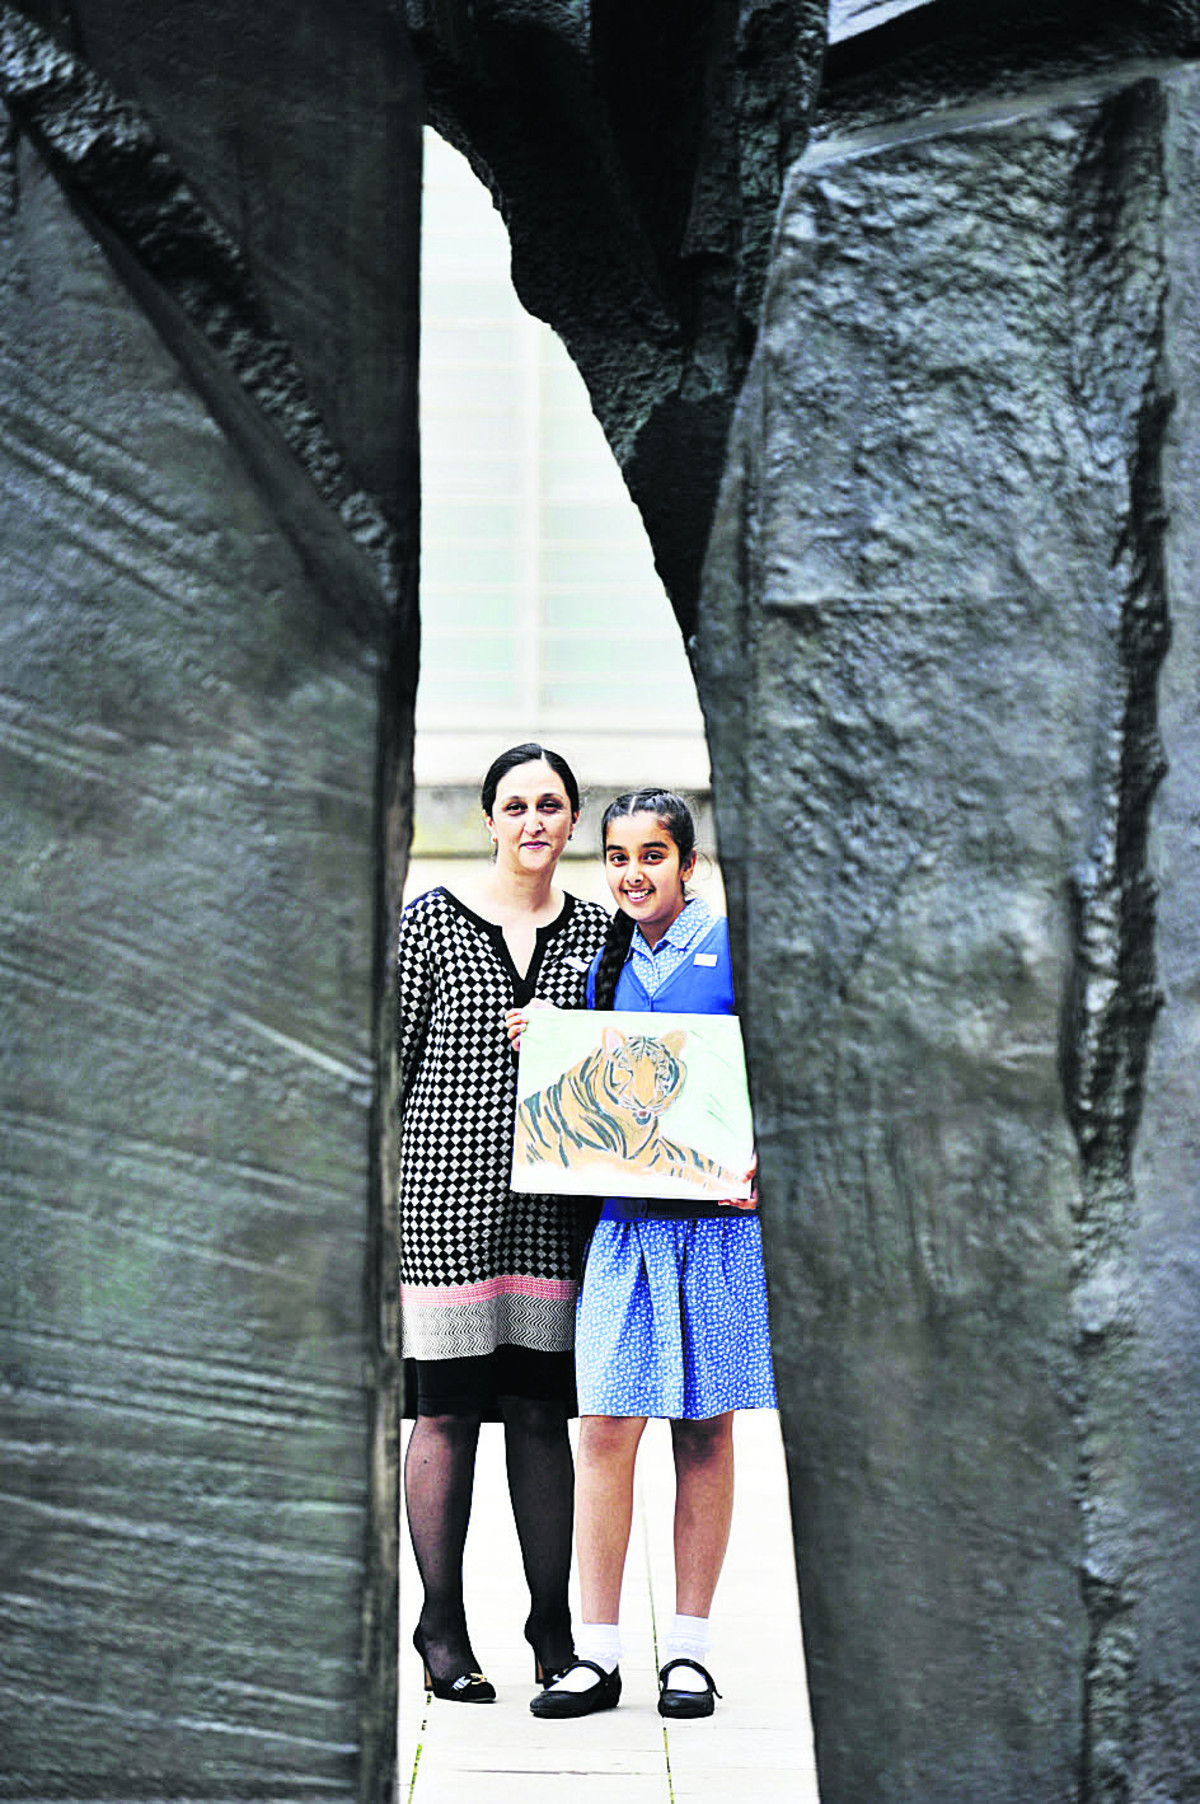 Oxford High School pupil Navica Jangra, 10, with her mum Shelly Jangra and her painting entitled Chilling Tiger